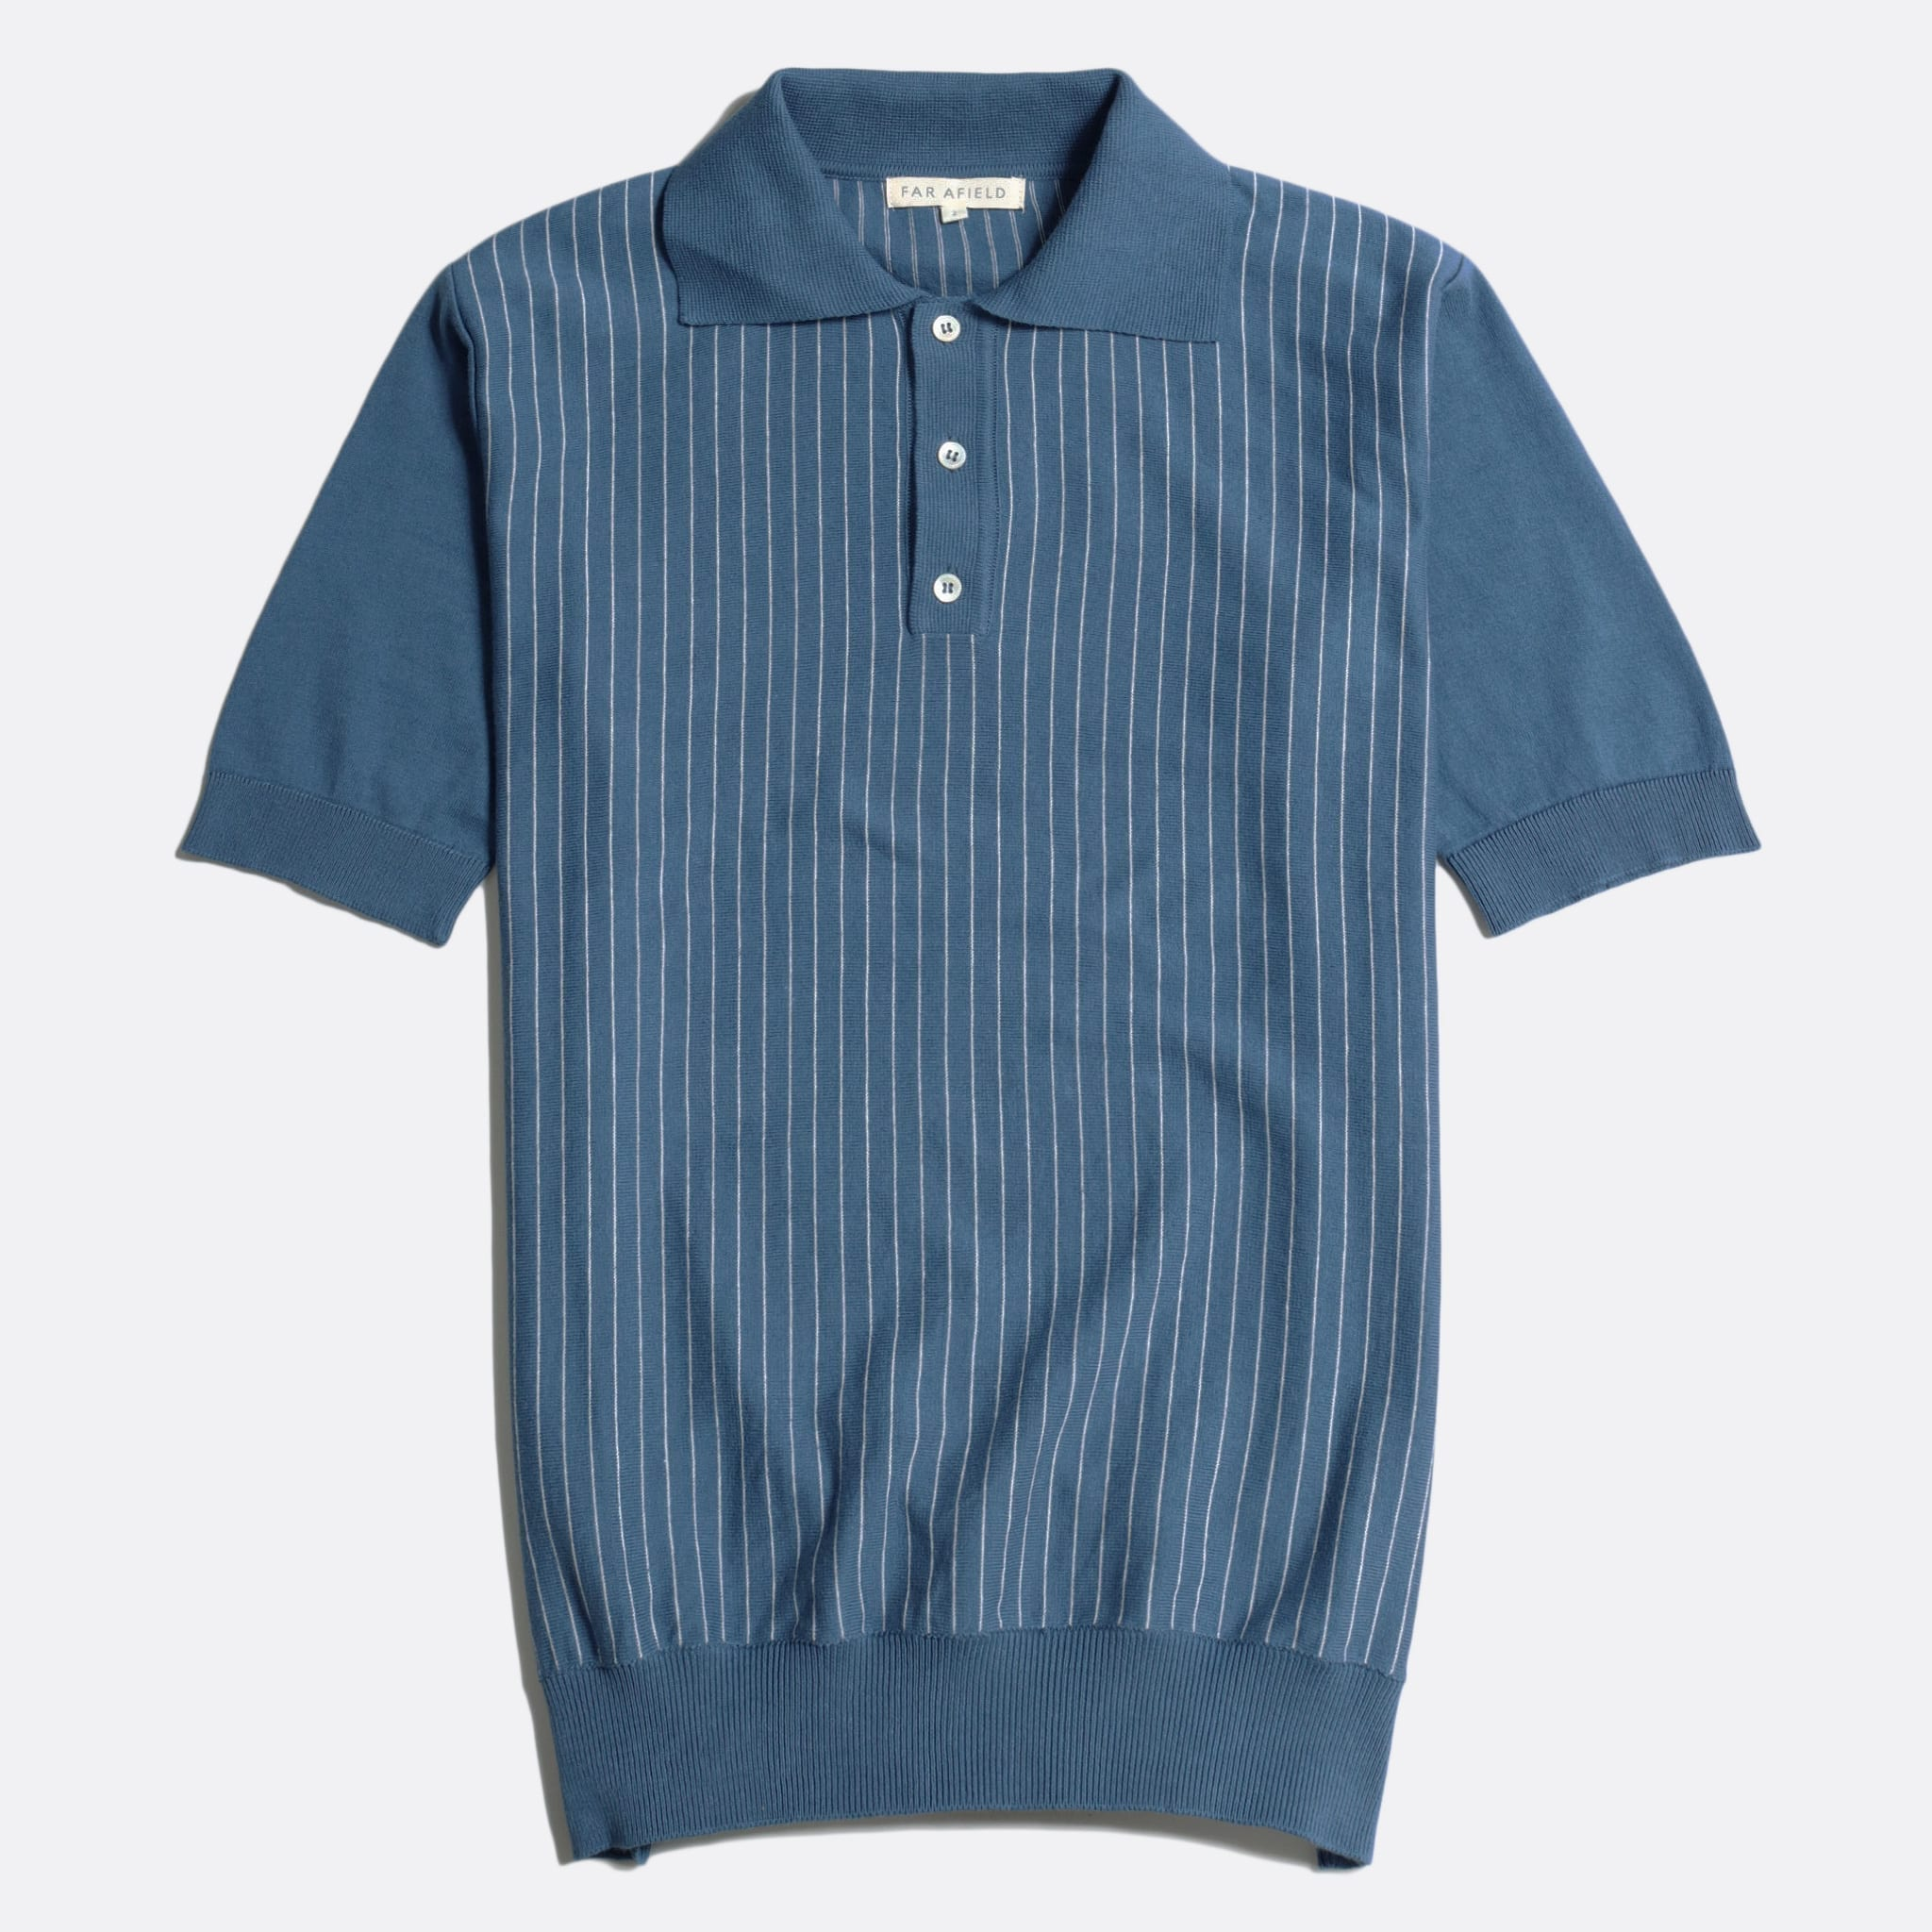 Far Afield Benny Short Sleeve Polo a Ensign Blue/White Sand Organic Cotton Fabric Short Sleeve Polo Mid Century Inspired